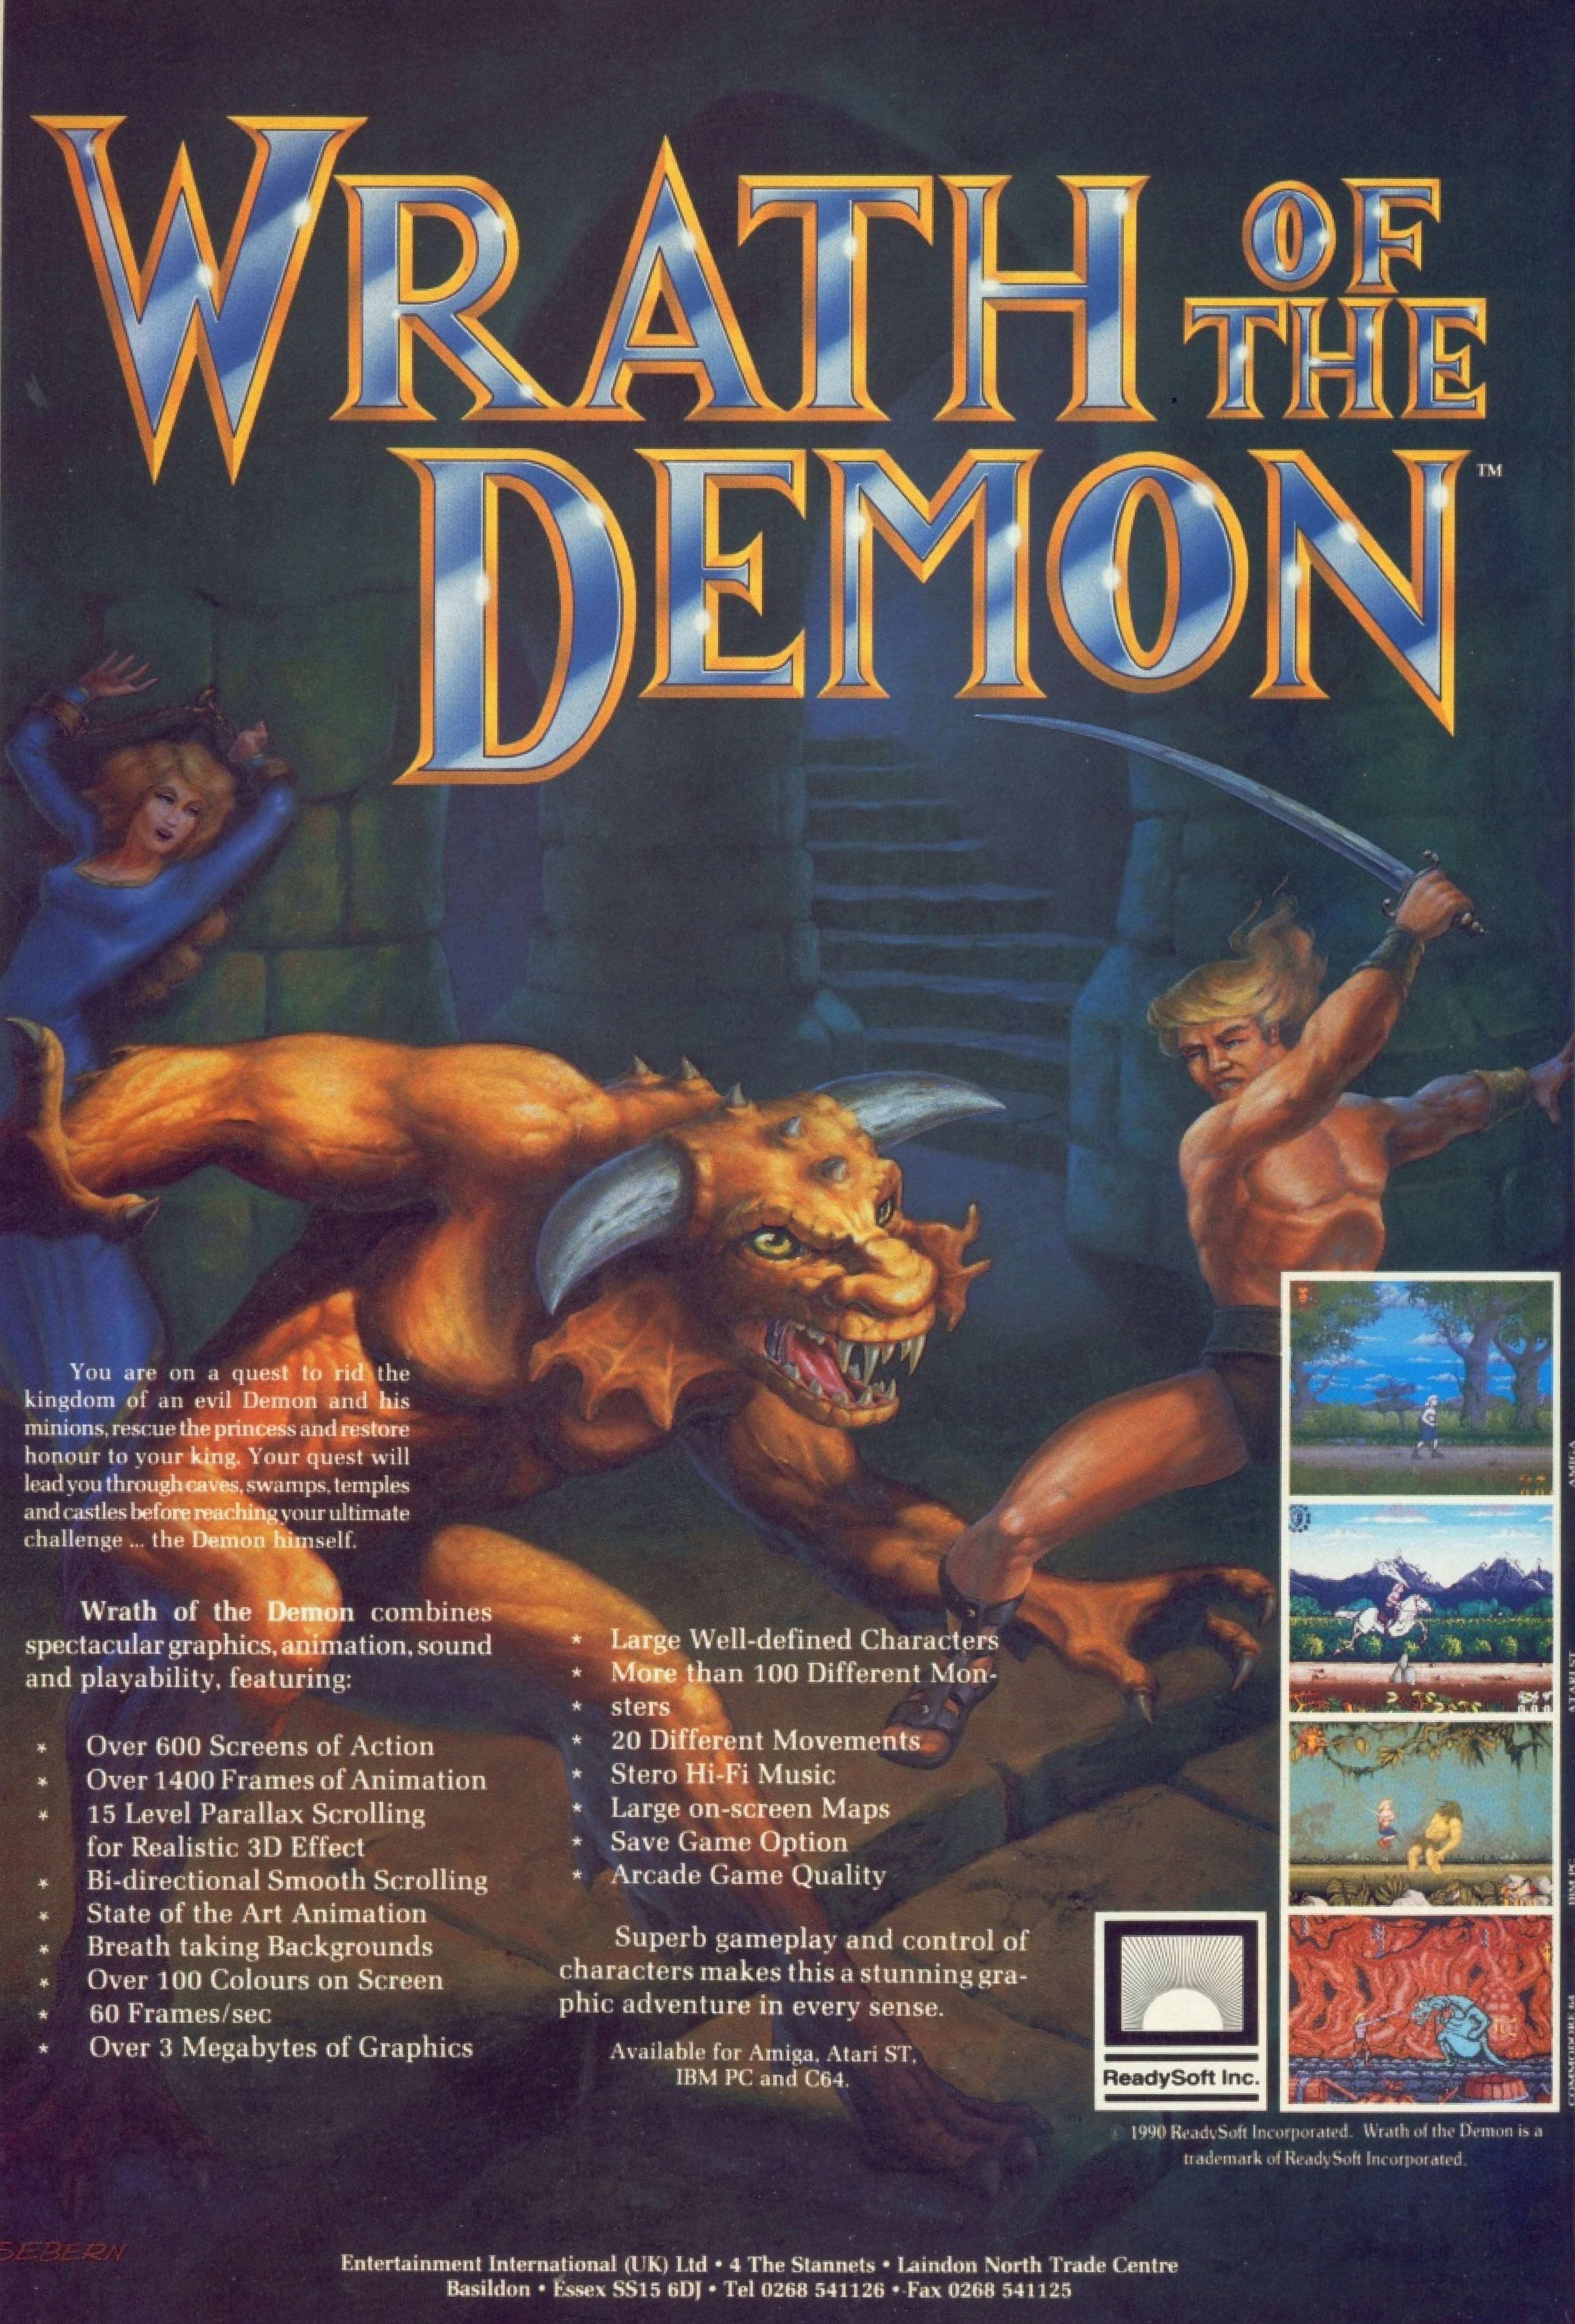 Wrath of the Demon (1991) promotional art - MobyGames